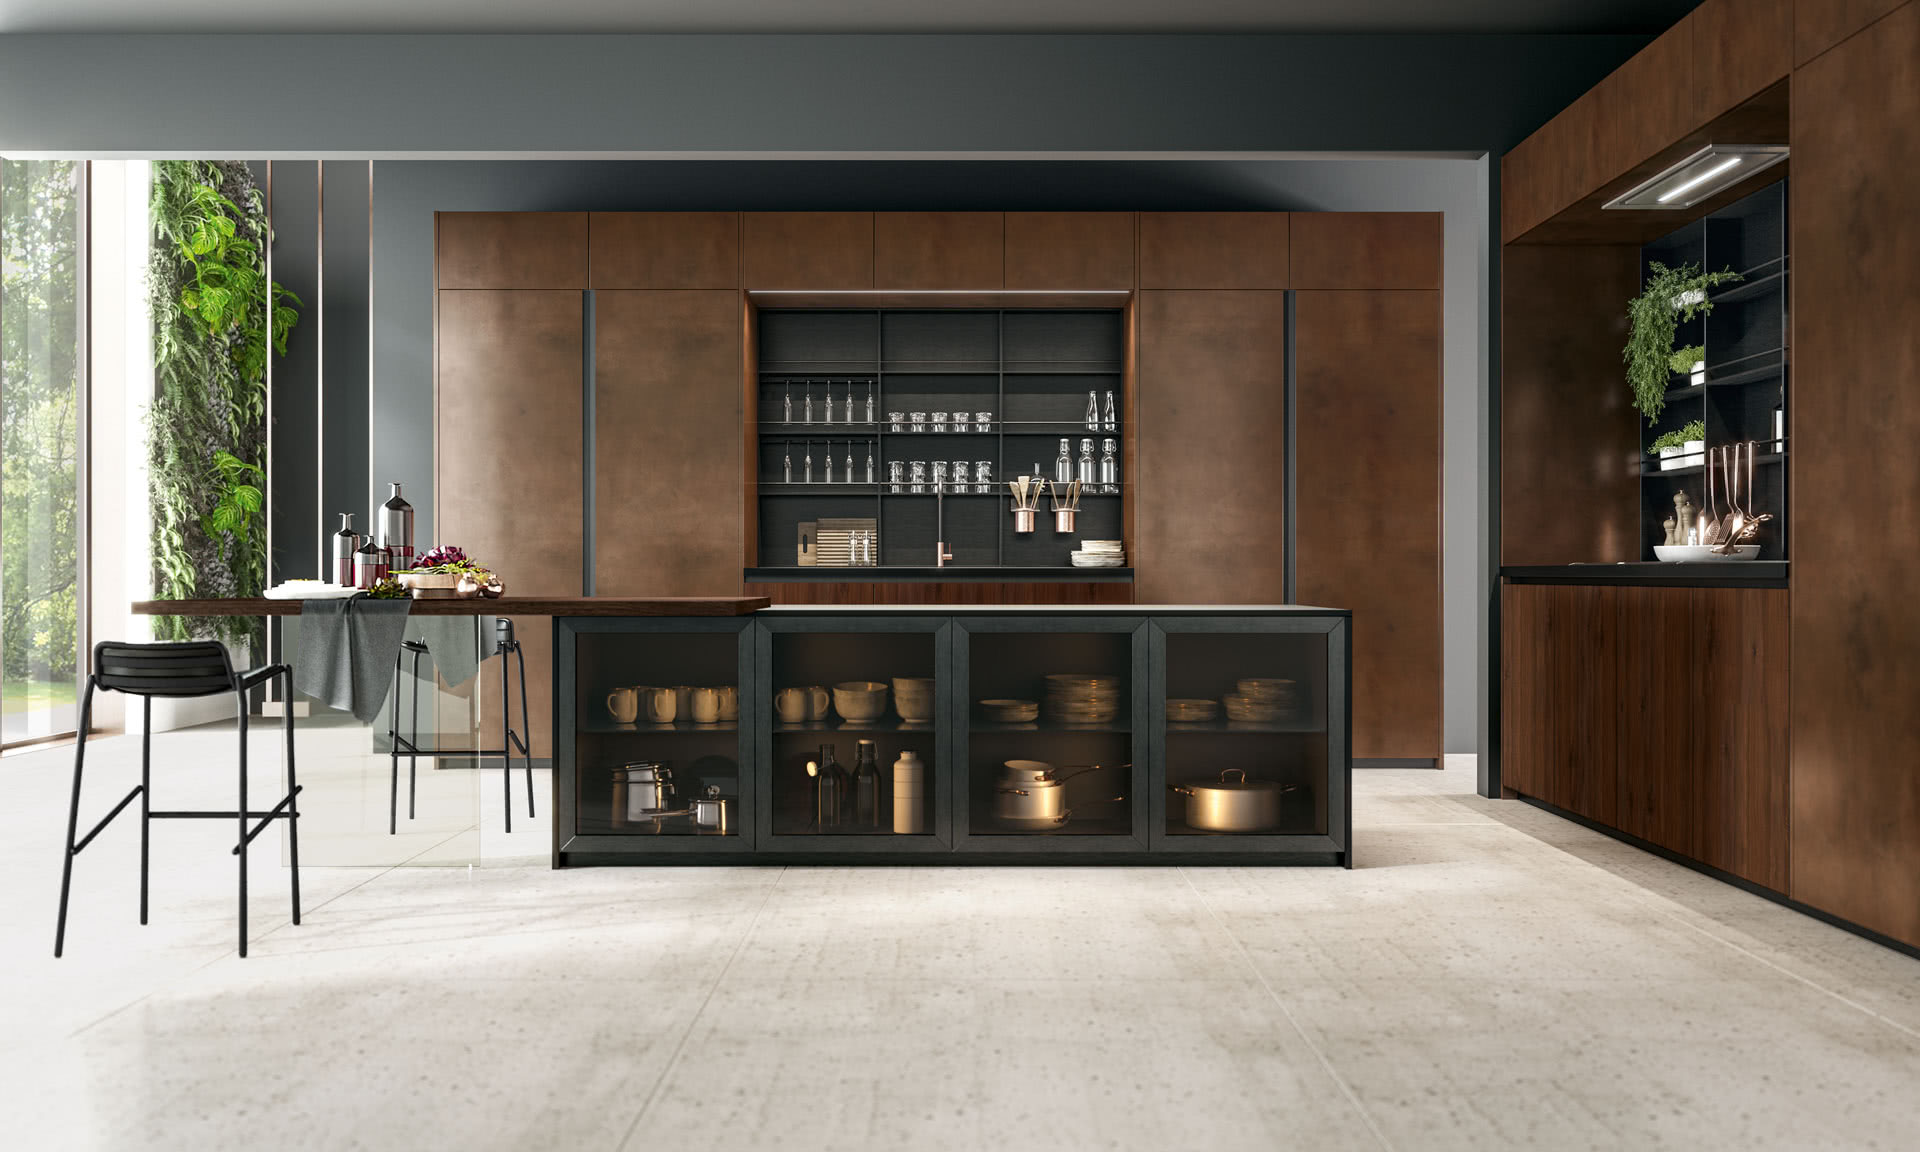 OLTRE DESIGN COLLECTION - Design Collection. Strong, modern, technologically advanced. A kitchen featuring pure texturing as its trump card. Compositions and details designed to bring out the best of contemporary living. - Cucine LUBE